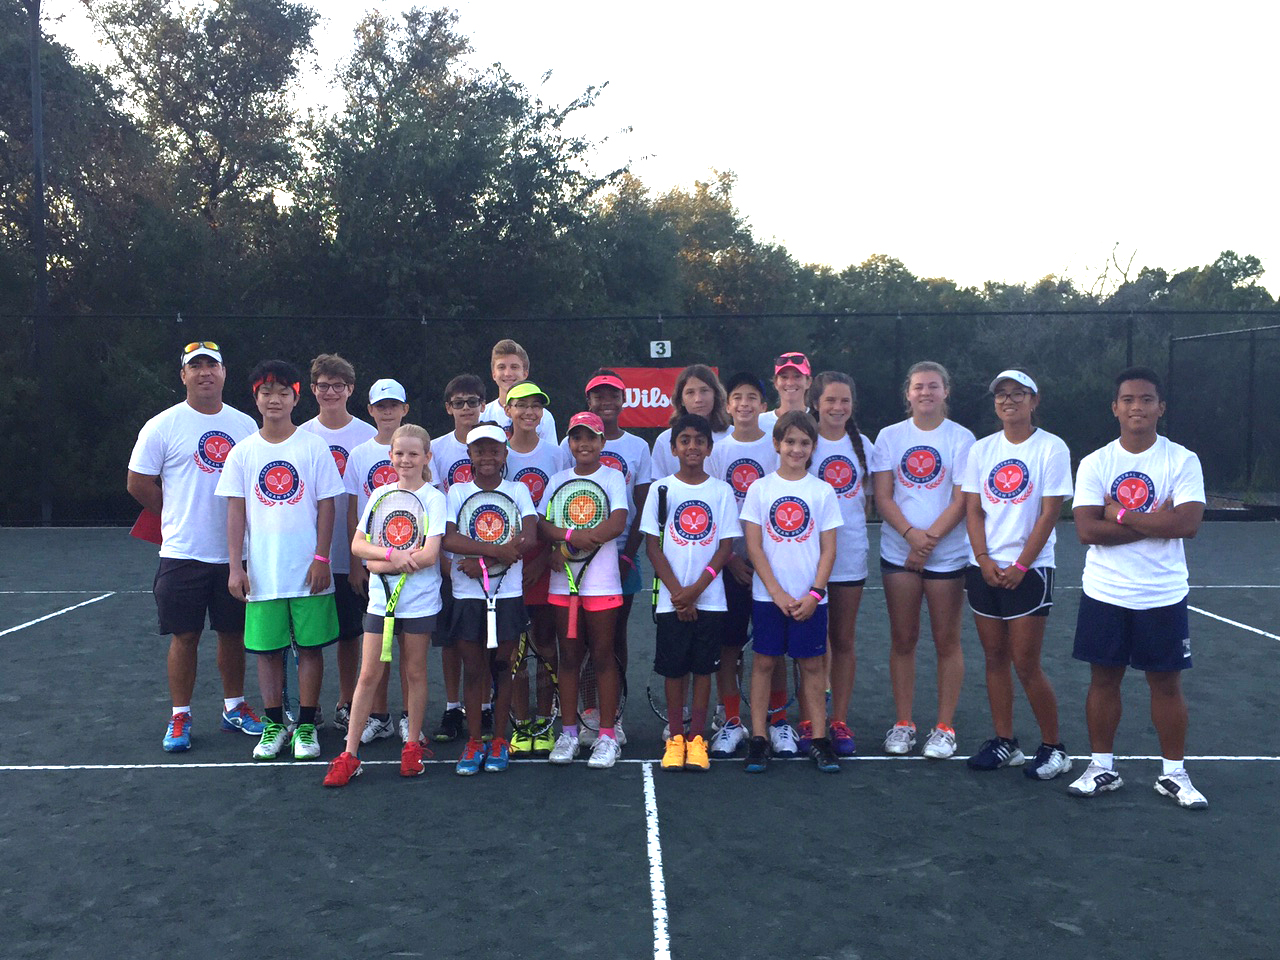 Children's Tennis Grand Prix